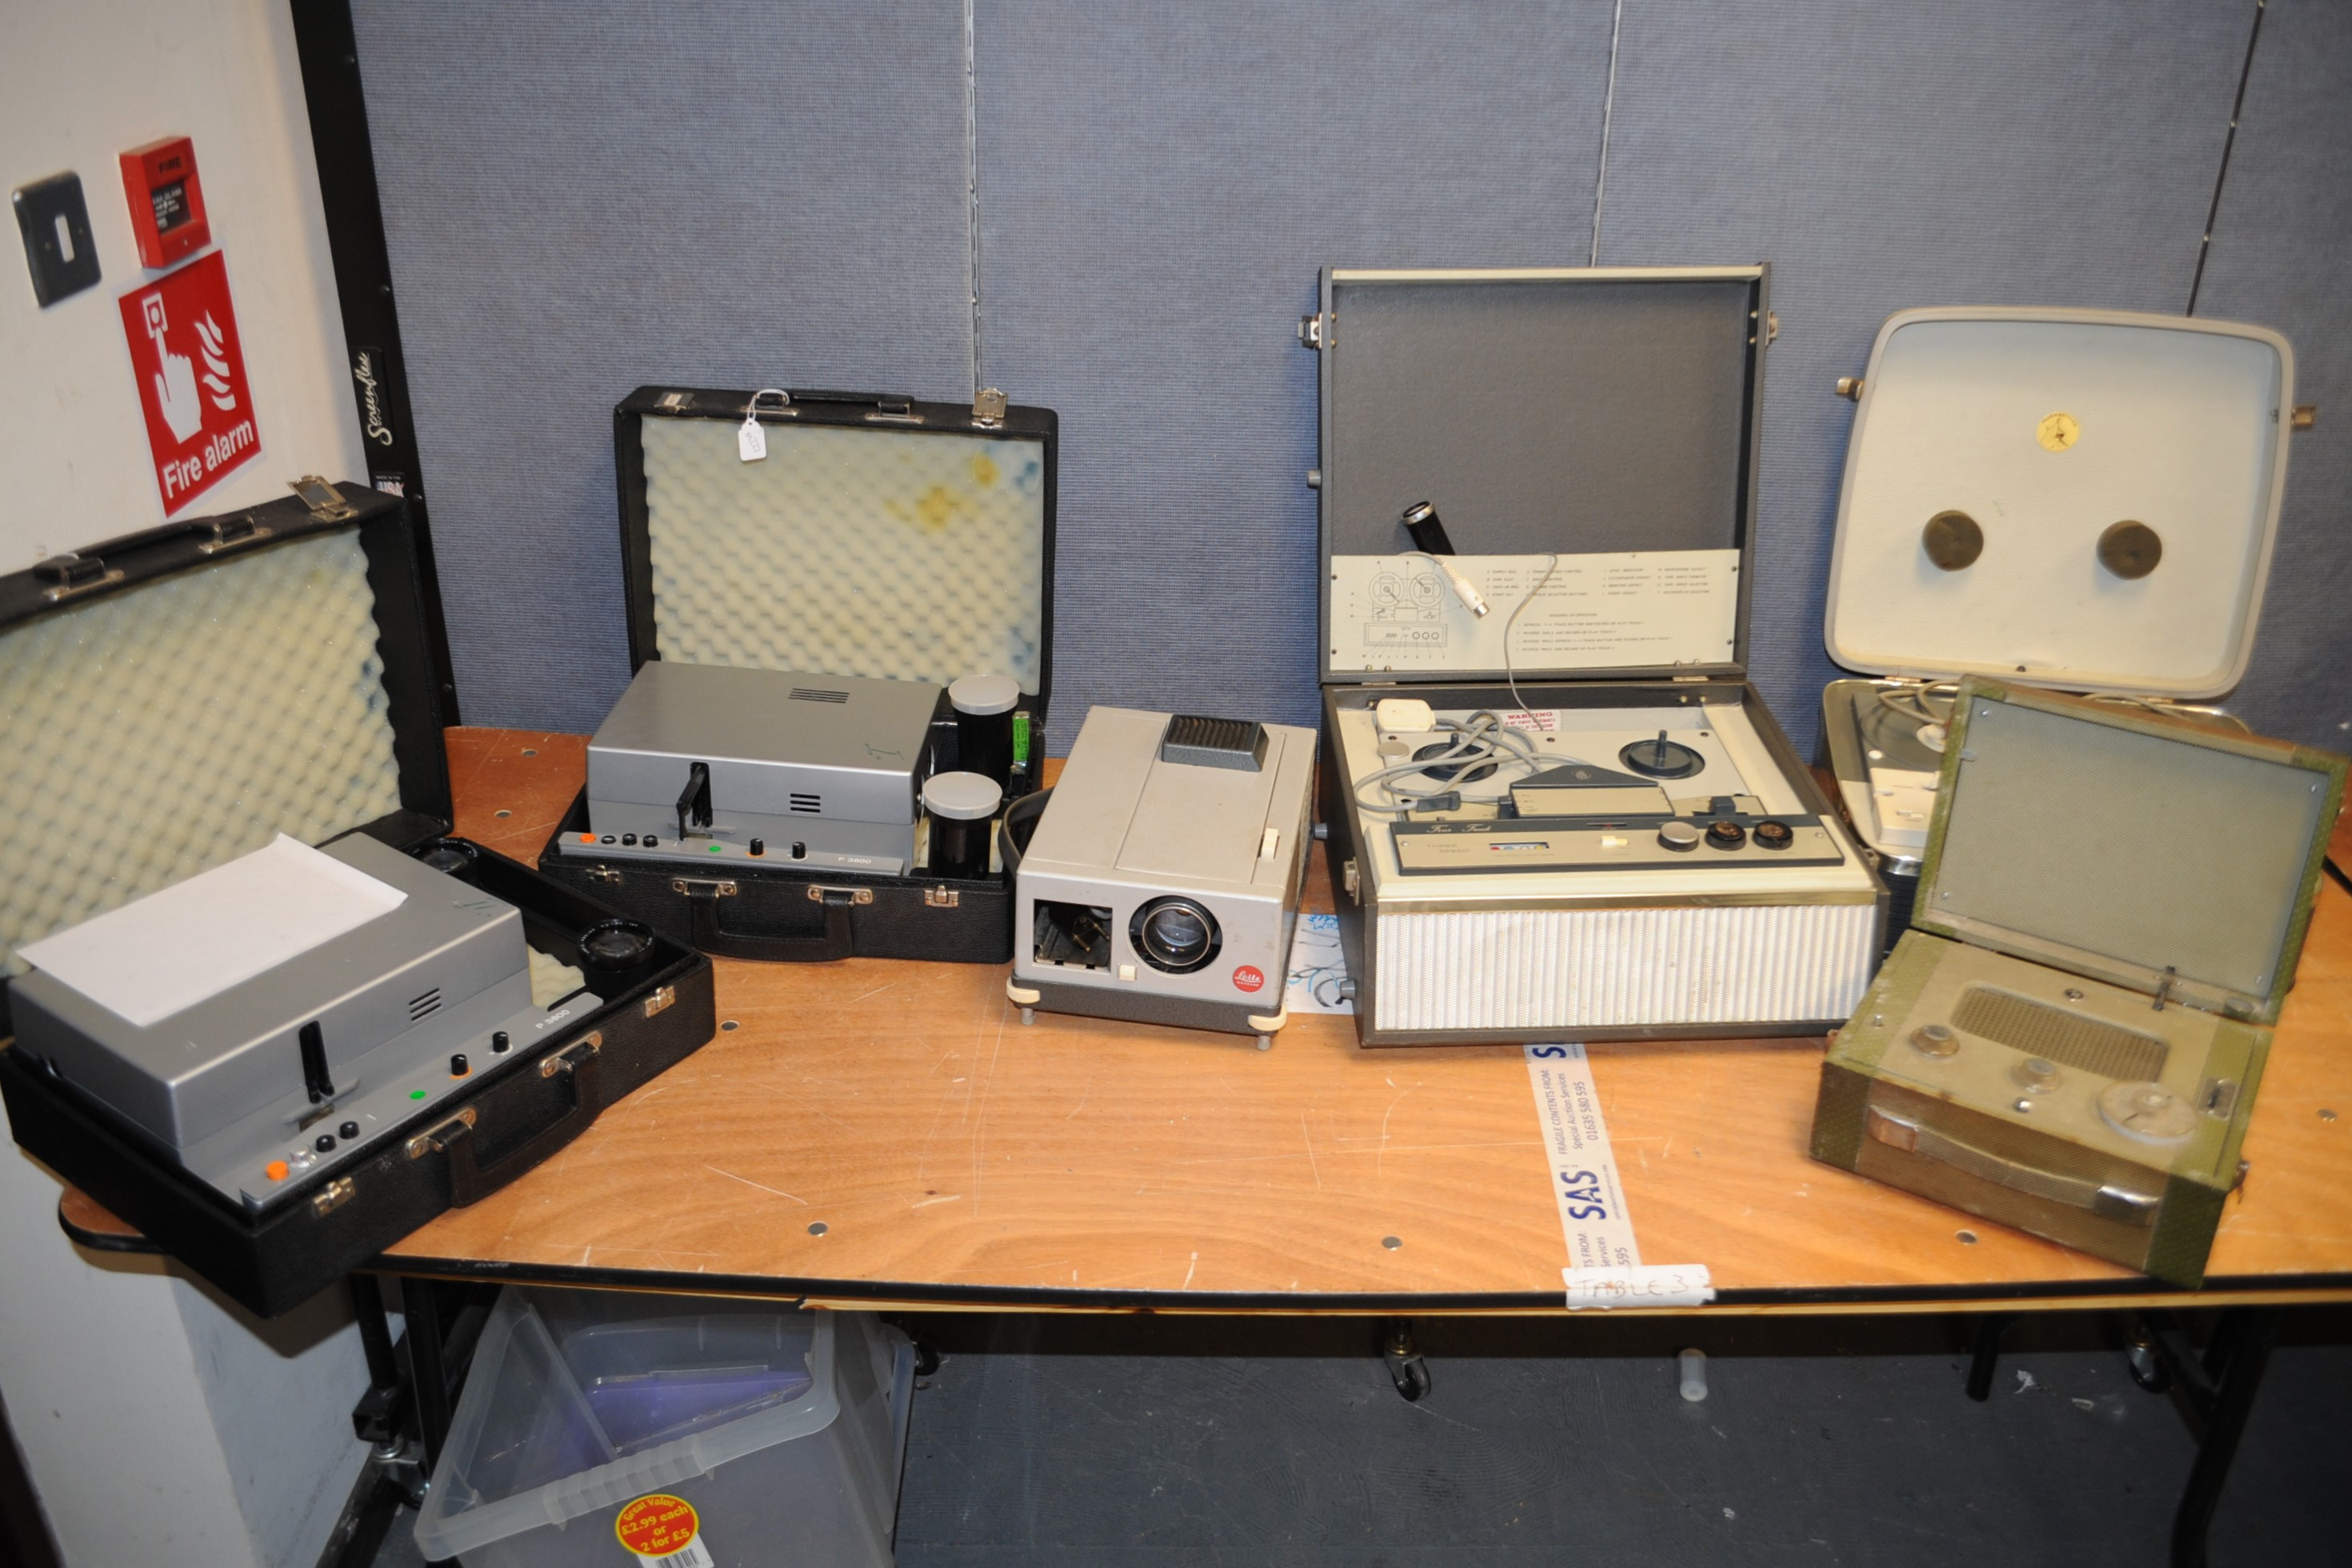 Lot 574 - Slide Projectors, two Rollei P 3800 slide dissolve projectors, with both lenses, in Rollei case, a